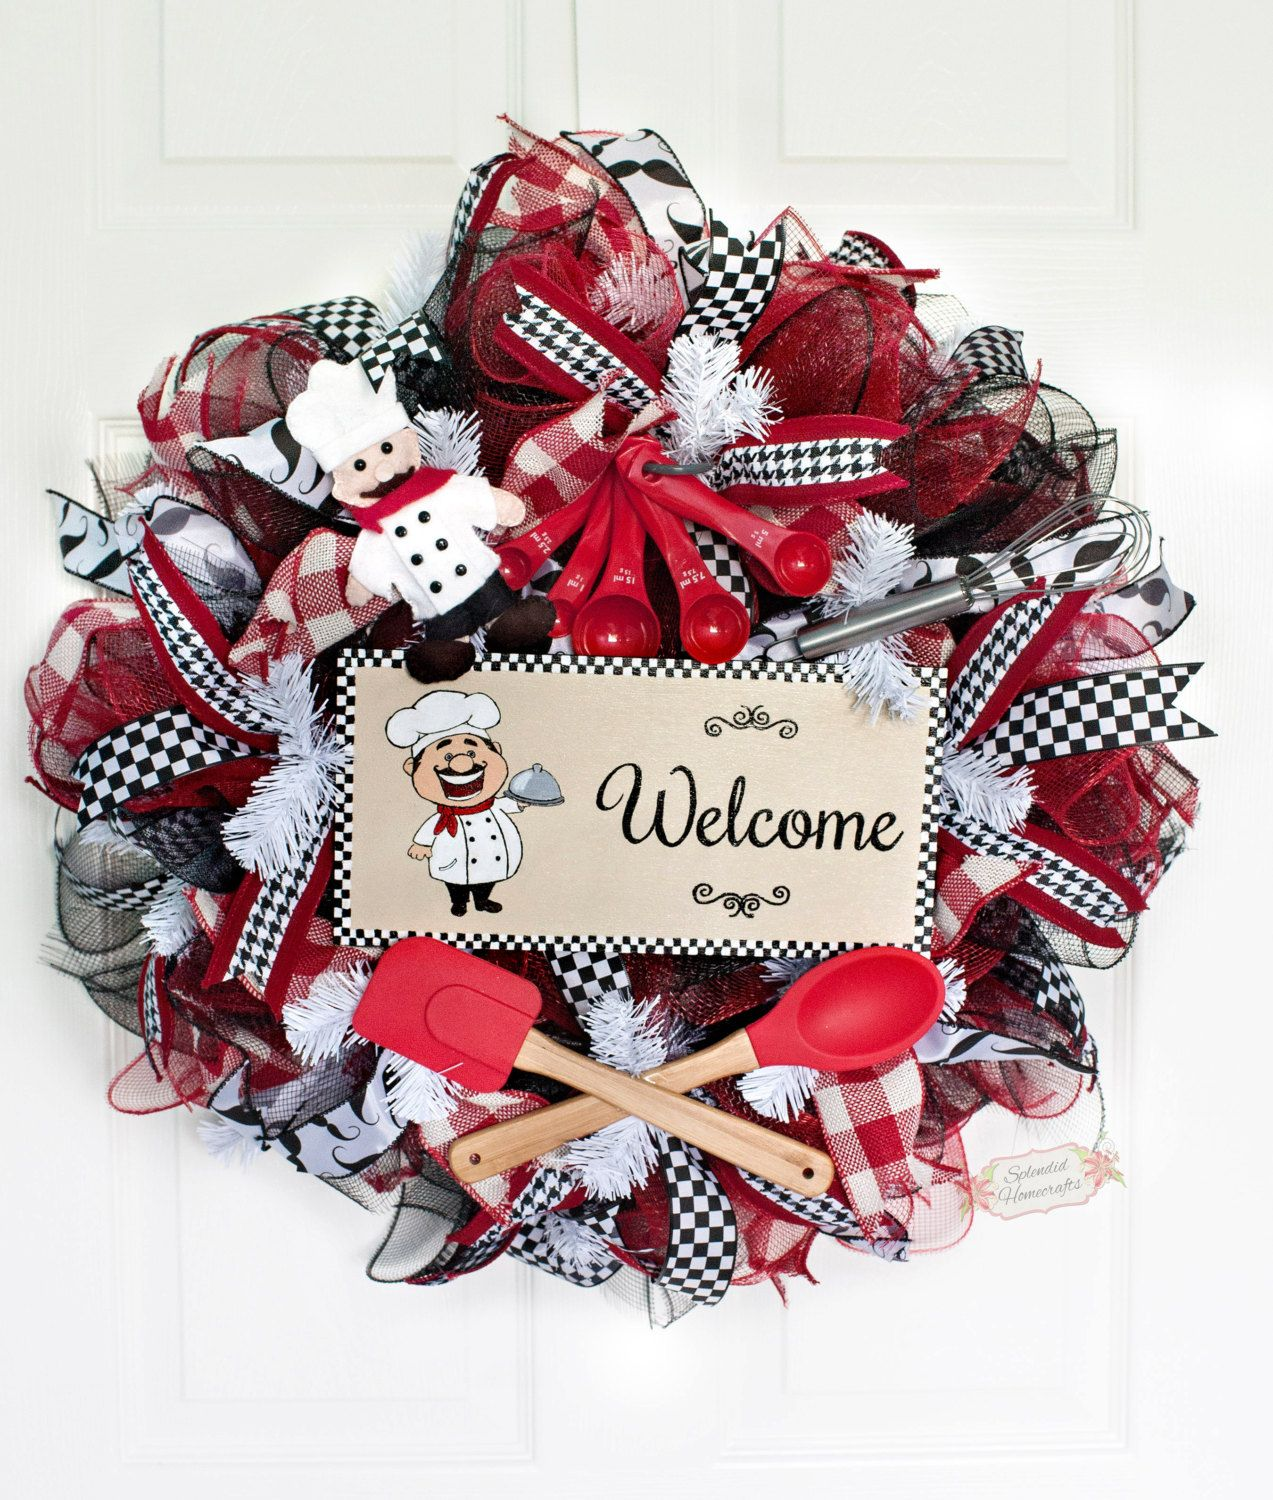 24 Chef Welcome Deco Mesh Wreath Chef Wreath Welcome Mesh Wreath Red